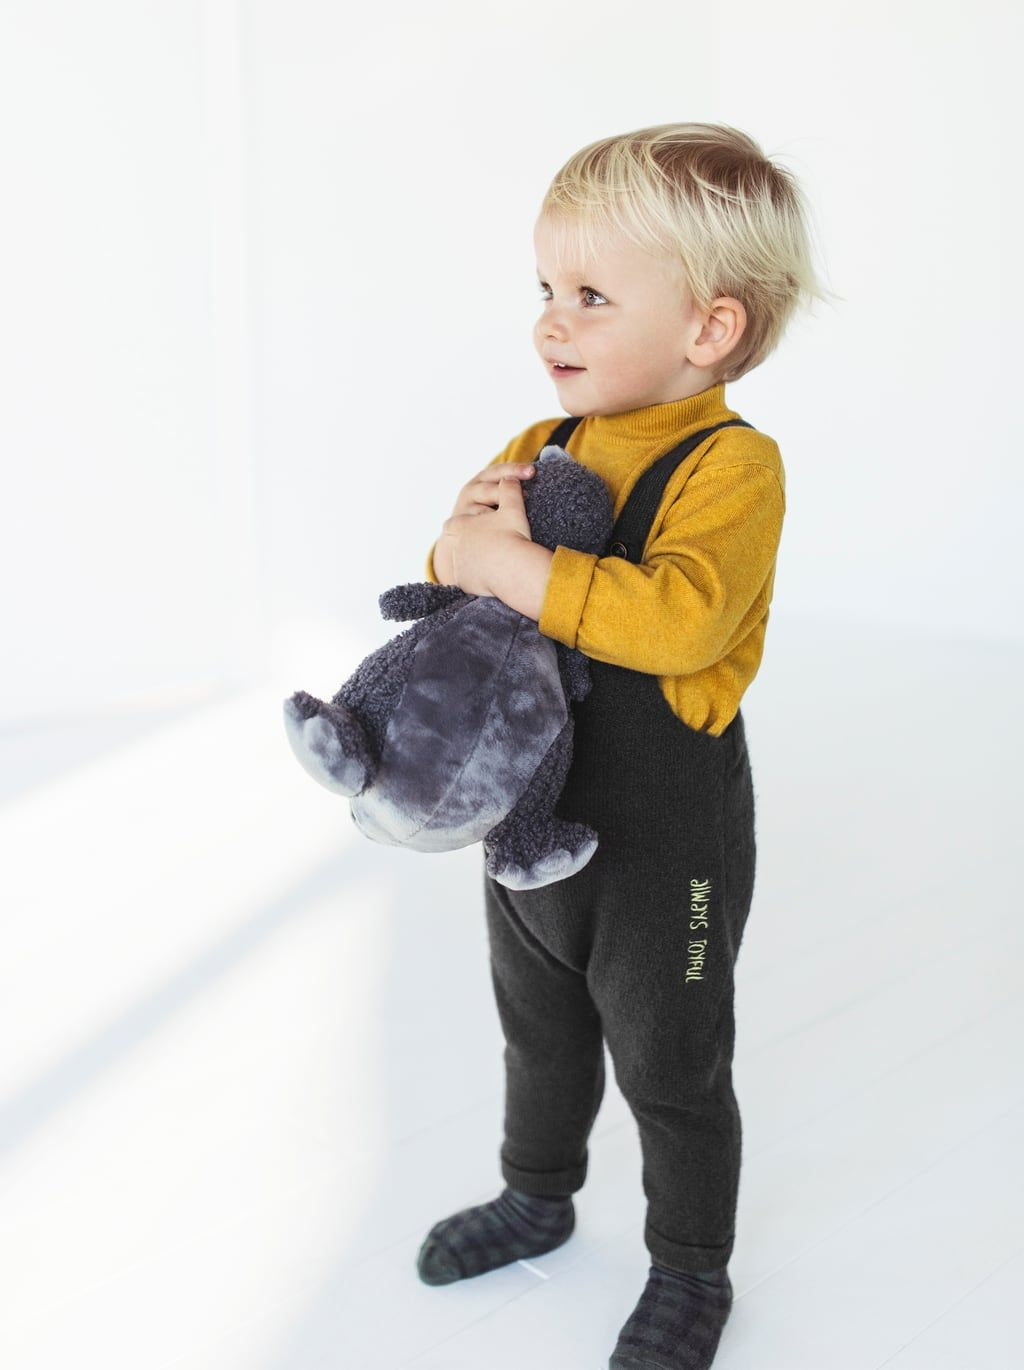 ZARA - KIDS - KNIT OVERALLS WITH TEXT | Baby outfit junge ...